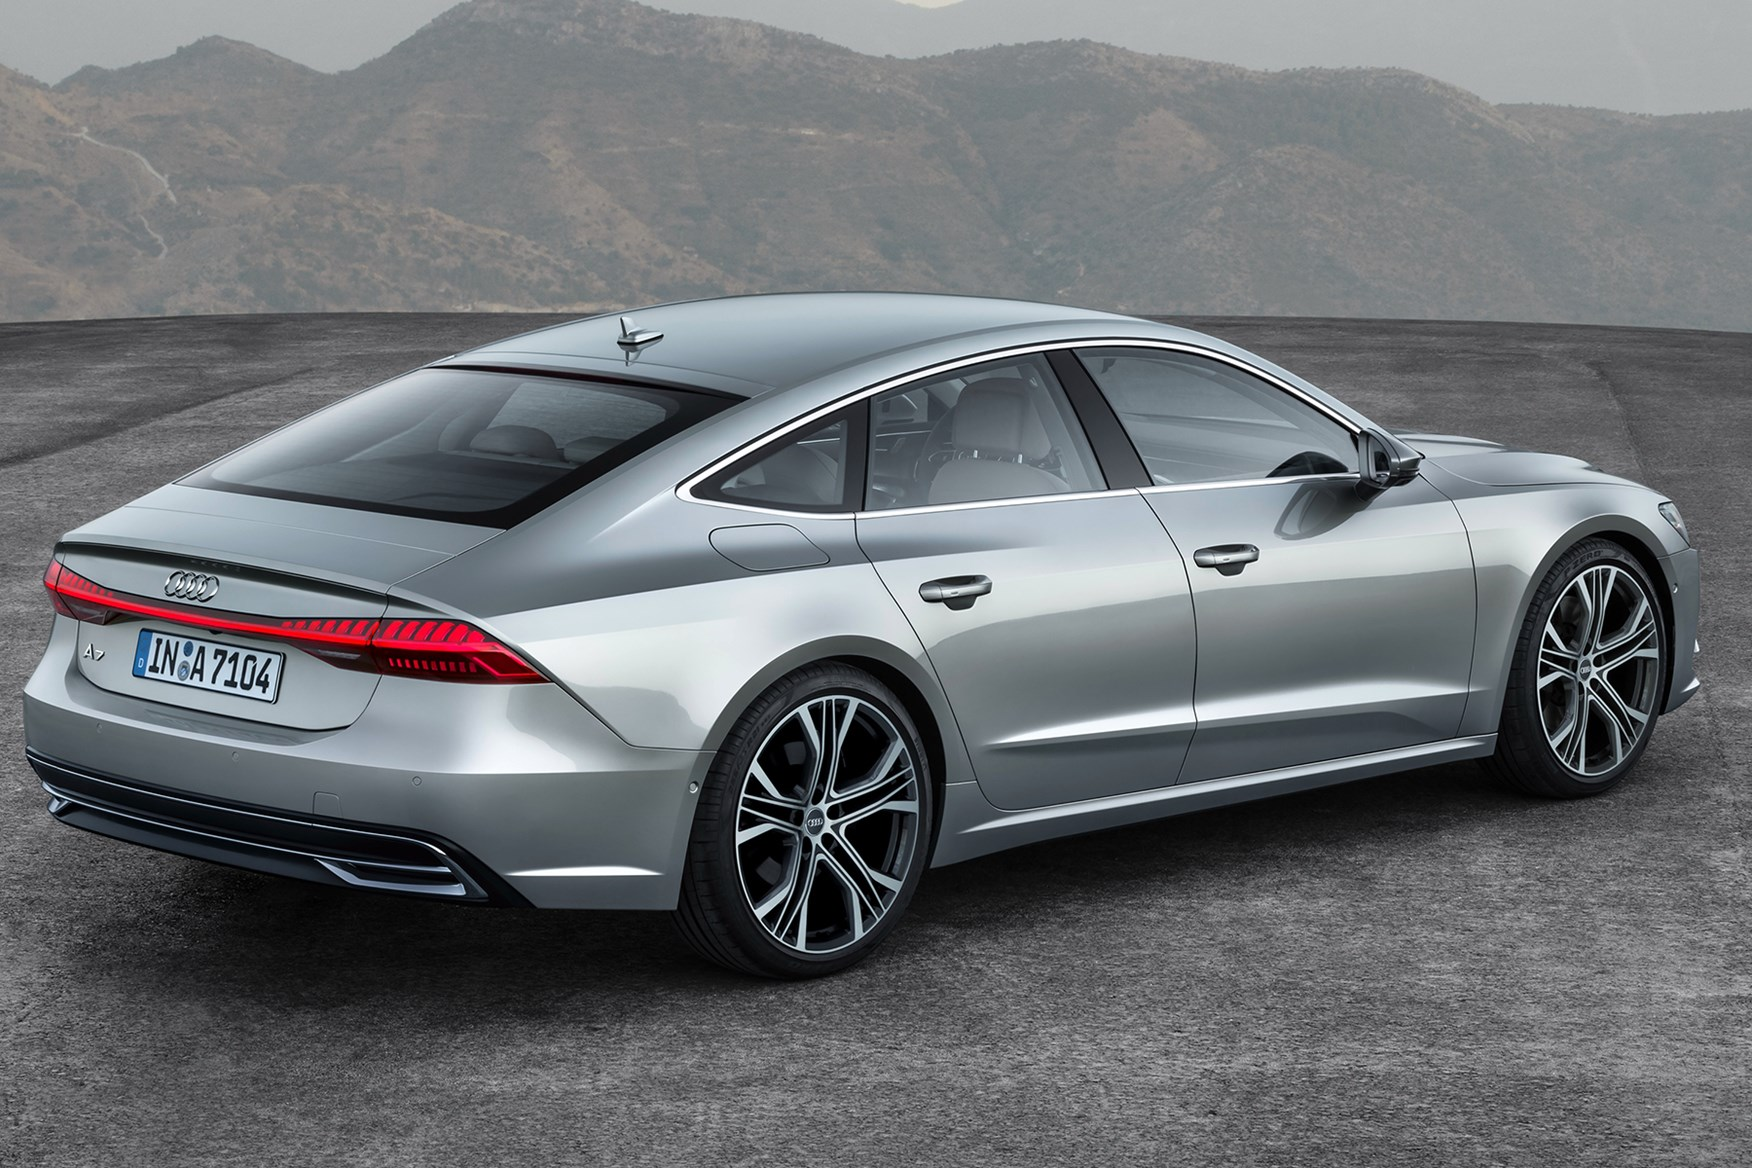 Audi A Running Costs Parkers - How much does an audi a7 cost